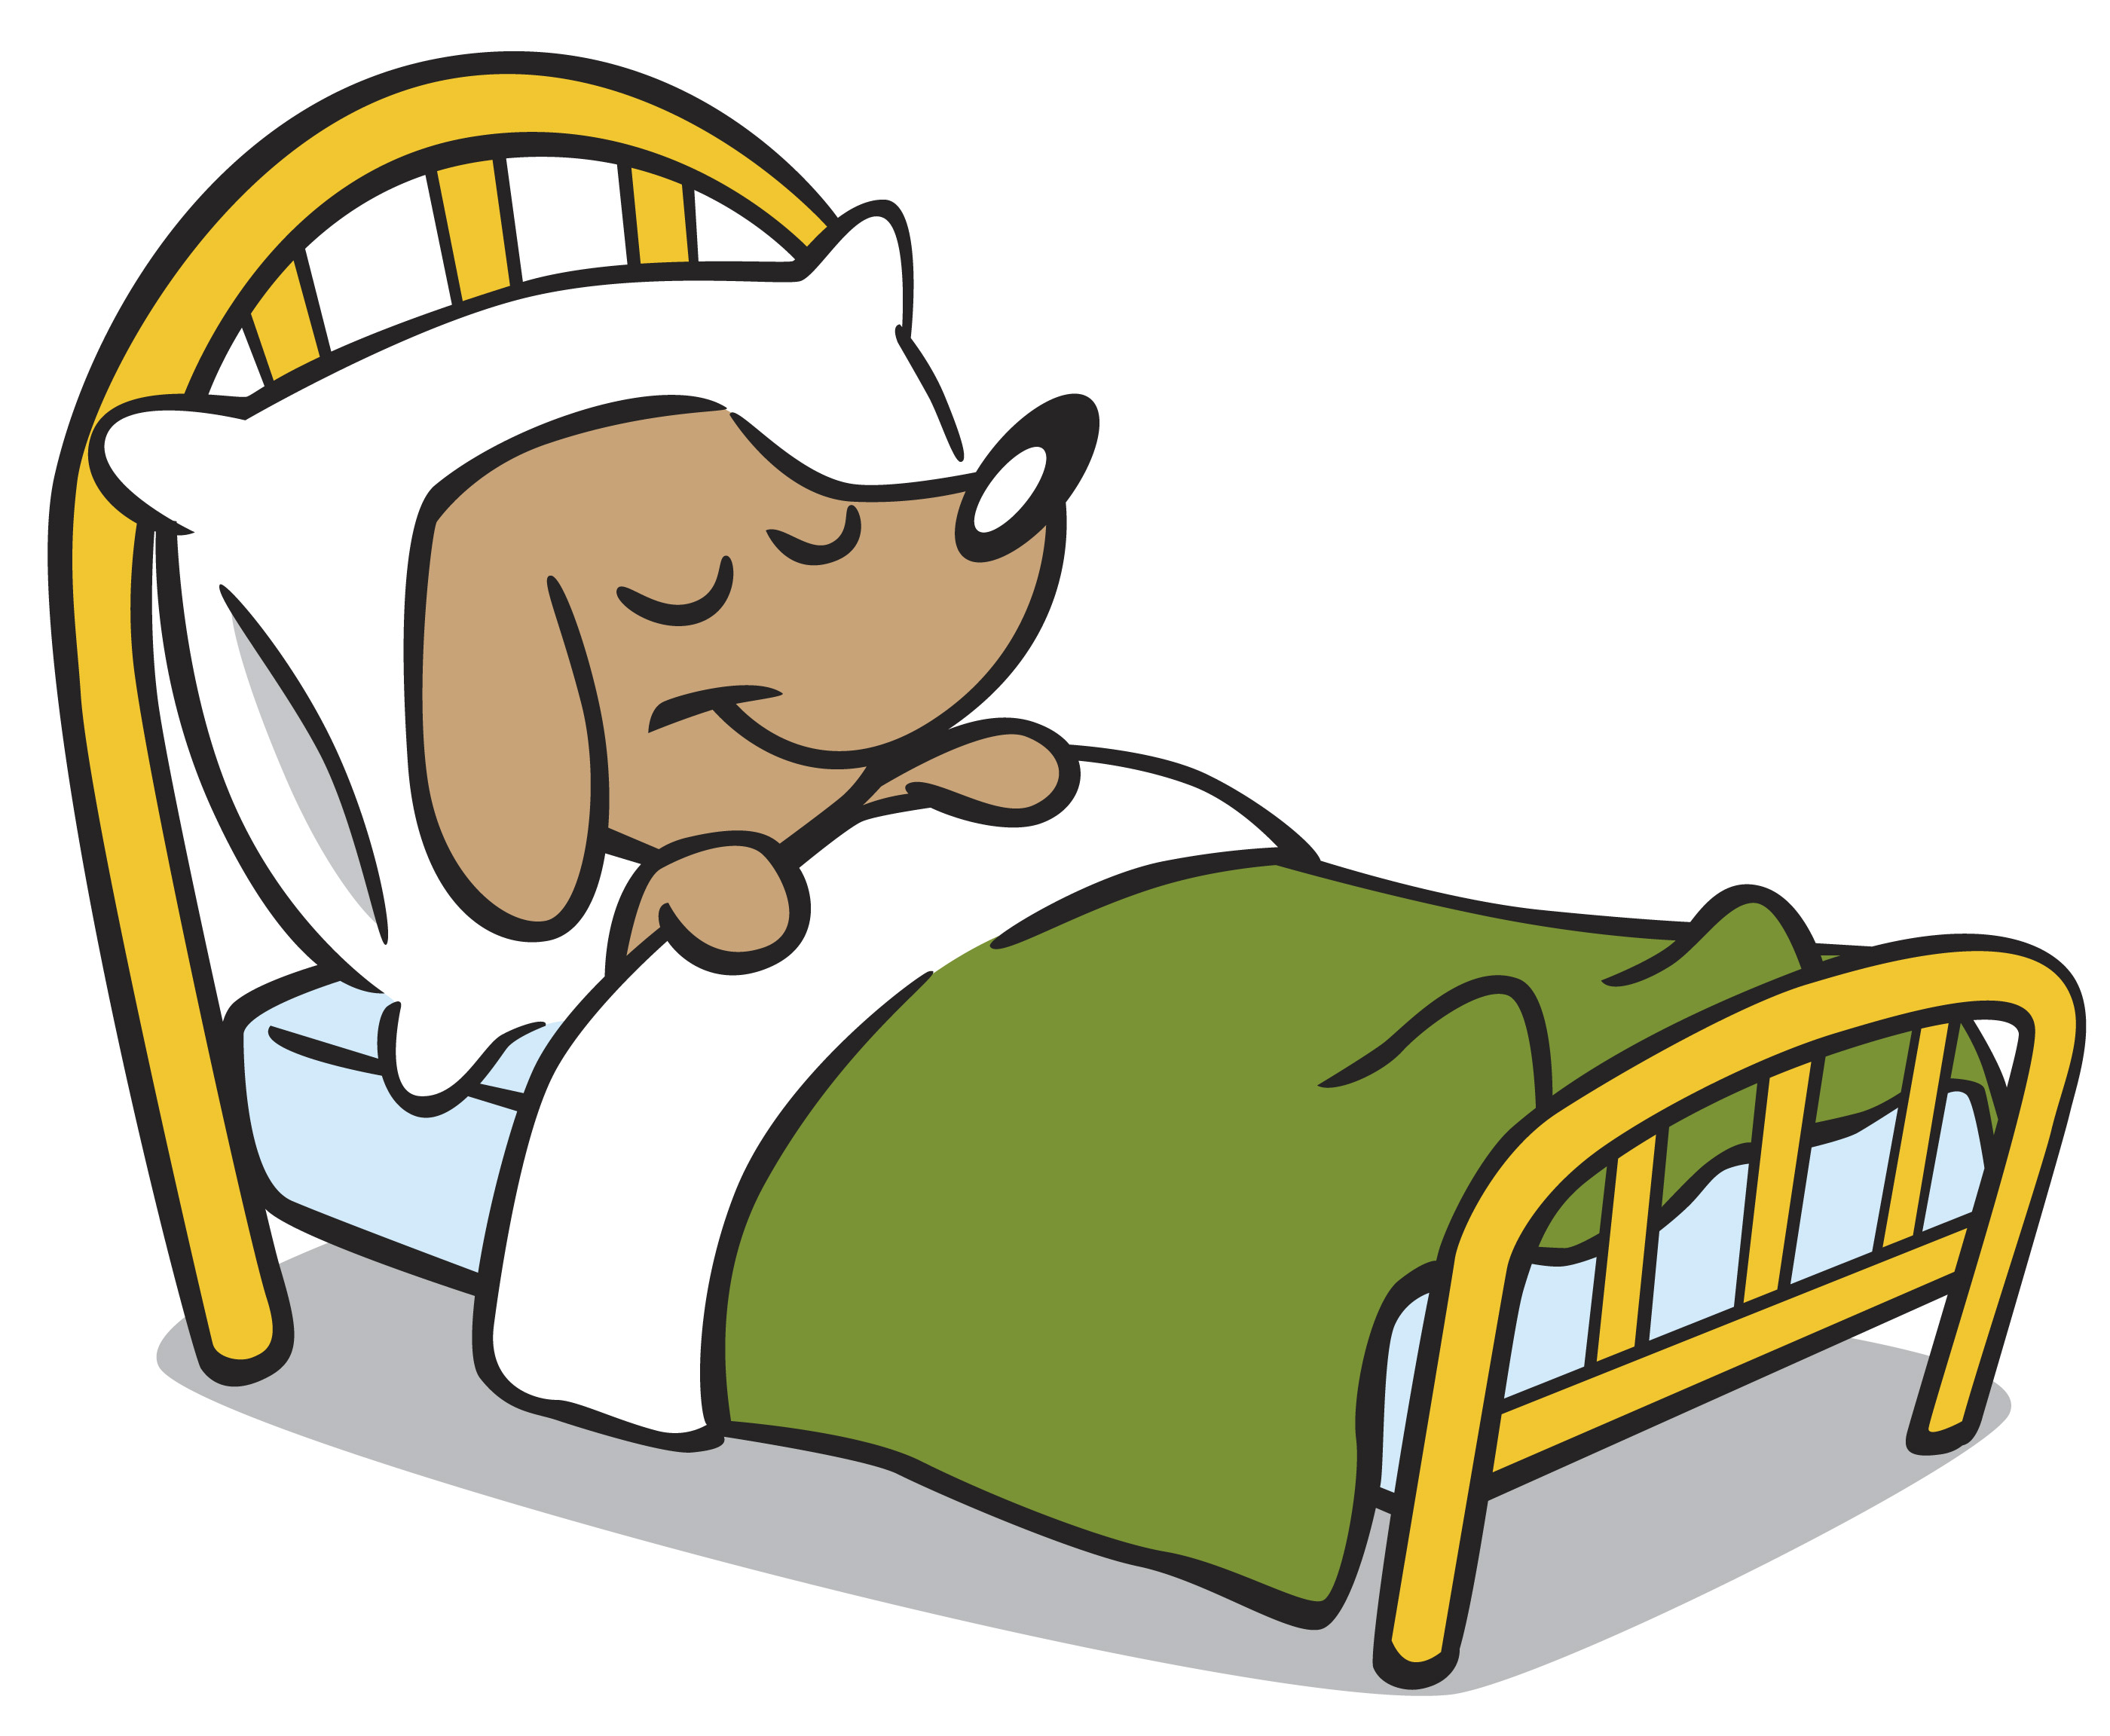 Dog Bed Clipart